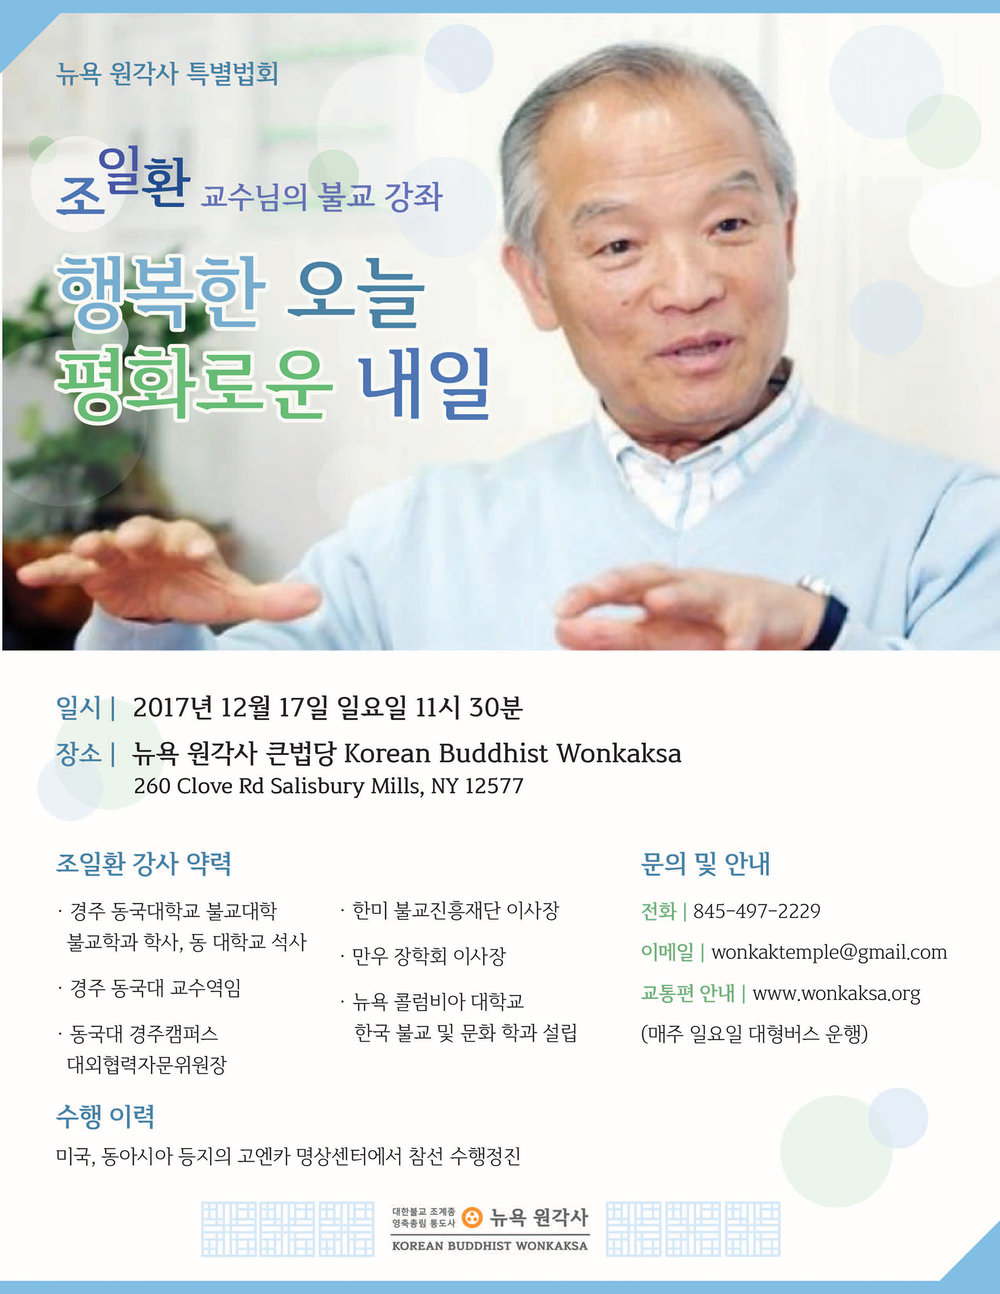 Dharma Lecture조일환 교수님의 불교 강좌 - Sunday, December 17th, 2017 at 11:30AM Professor Ill Hwan Cho's lecture on Buddhist's approach to everyday Life